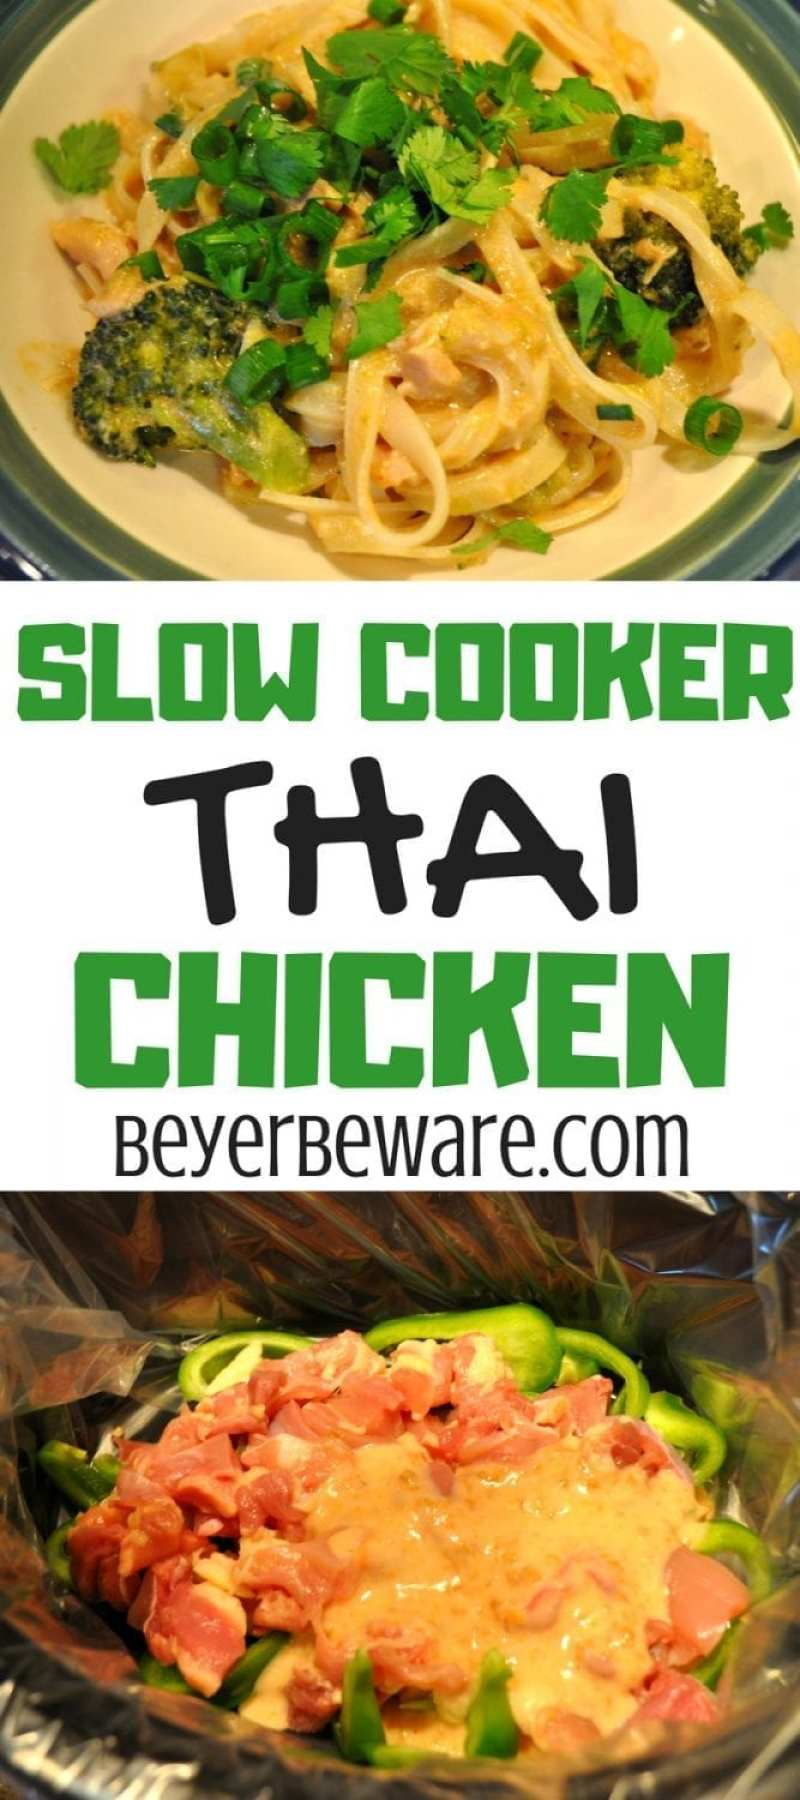 Slow Cooker Thai Chicken served with rice noodles or rice offers the peanut and cilantro flavors of pad thai with a hint of heat to your liking straight out of the crock pot.